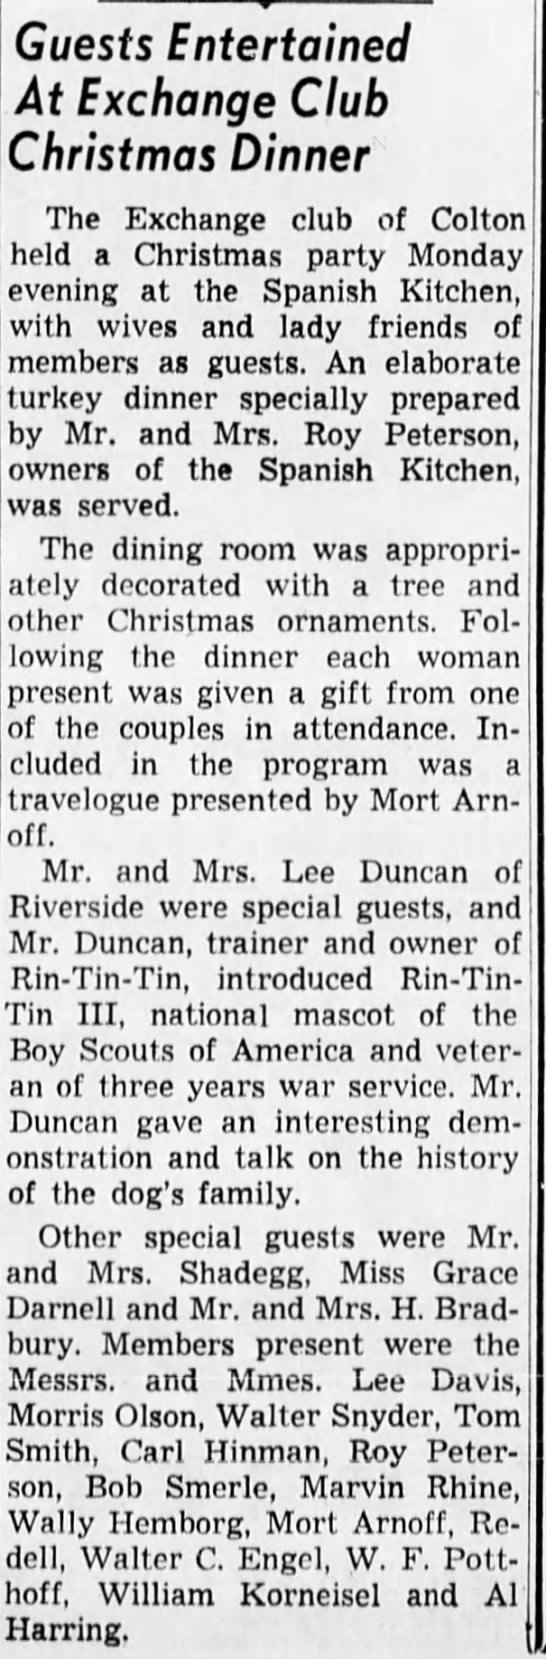 1948 Dec 22 - guest William Korneisel attend Exchange Club Christmas Party -